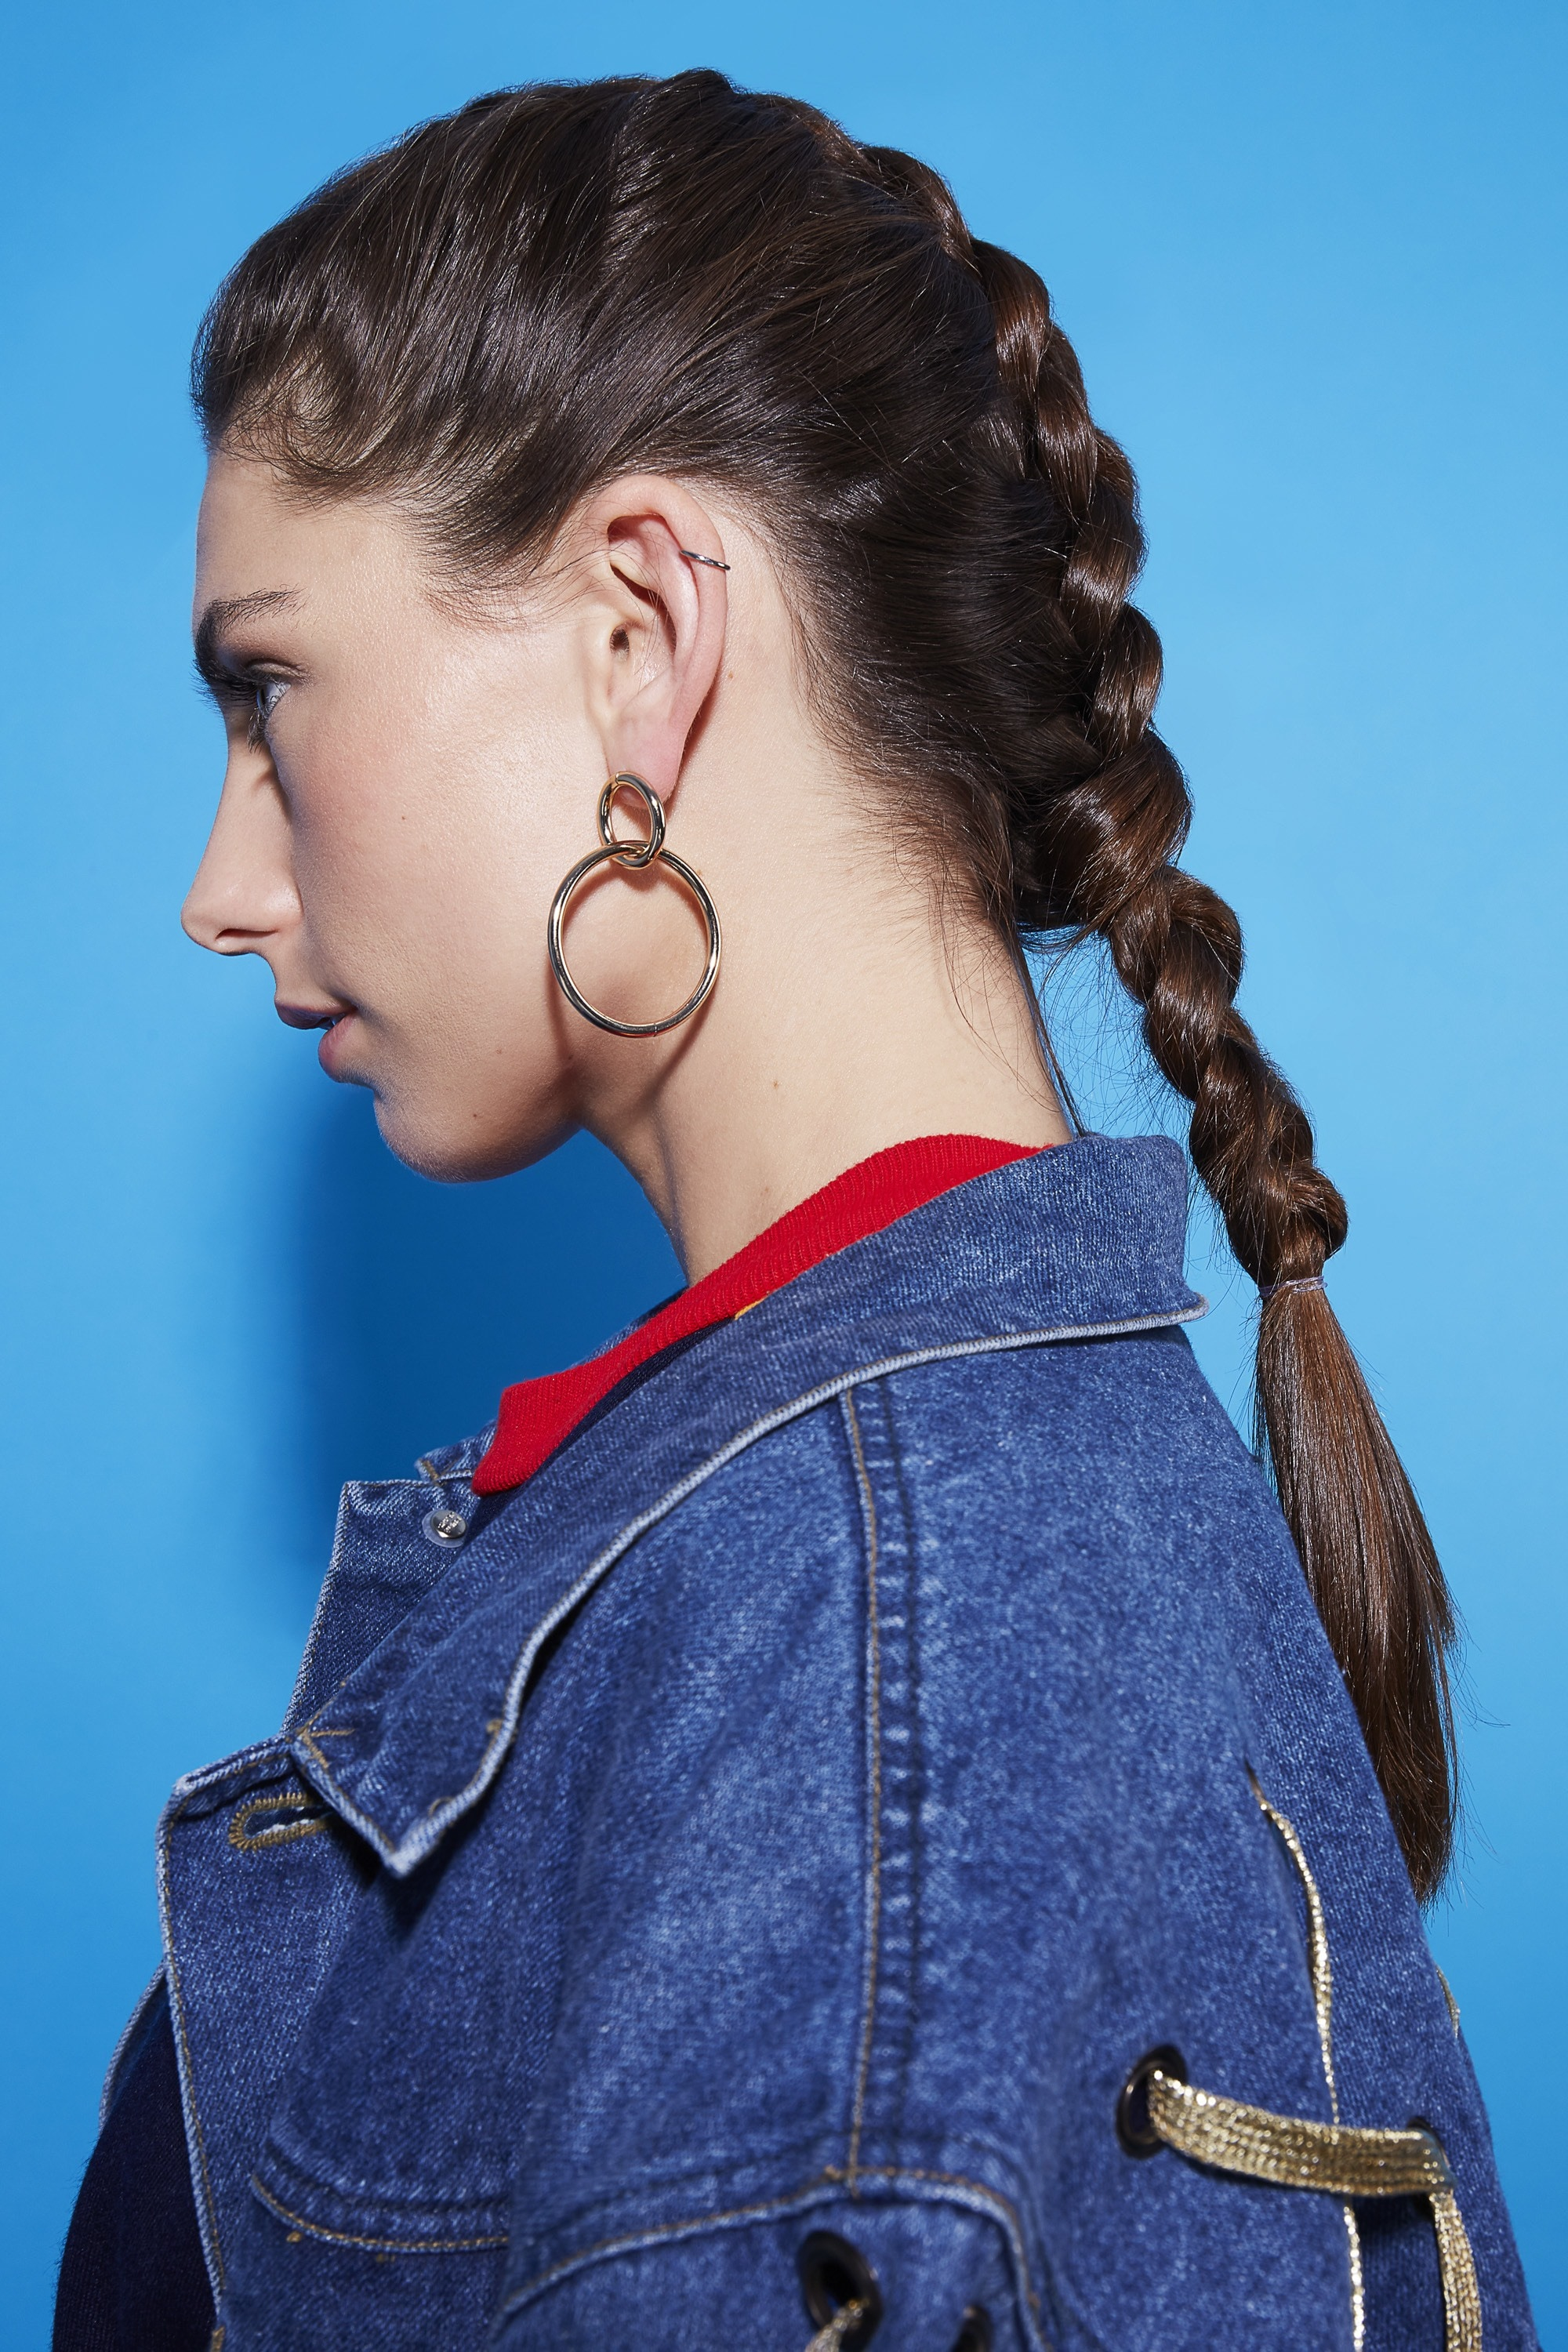 easy sporty hairstyles: close up shot of woman with dutch braid hairstyle, wearing denim jacket and red jumper, with hoop earrings